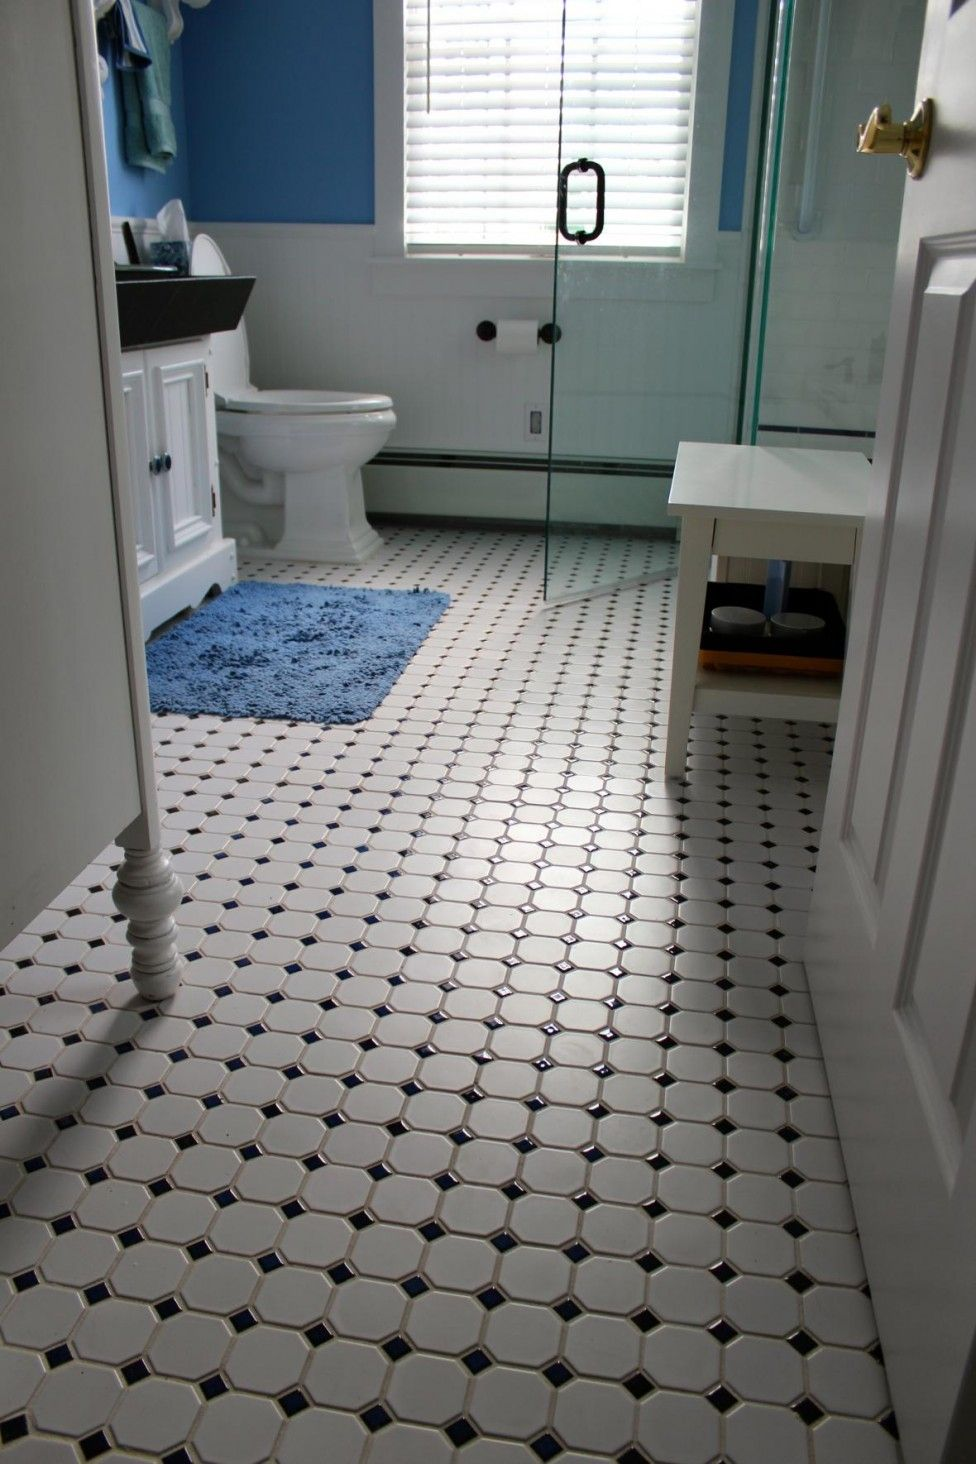 Appealing black and white bathrooms tile octagon with black dotted appealing black and white bathrooms tile octagon with black dotted bathroom floor tile eas in white dailygadgetfo Gallery